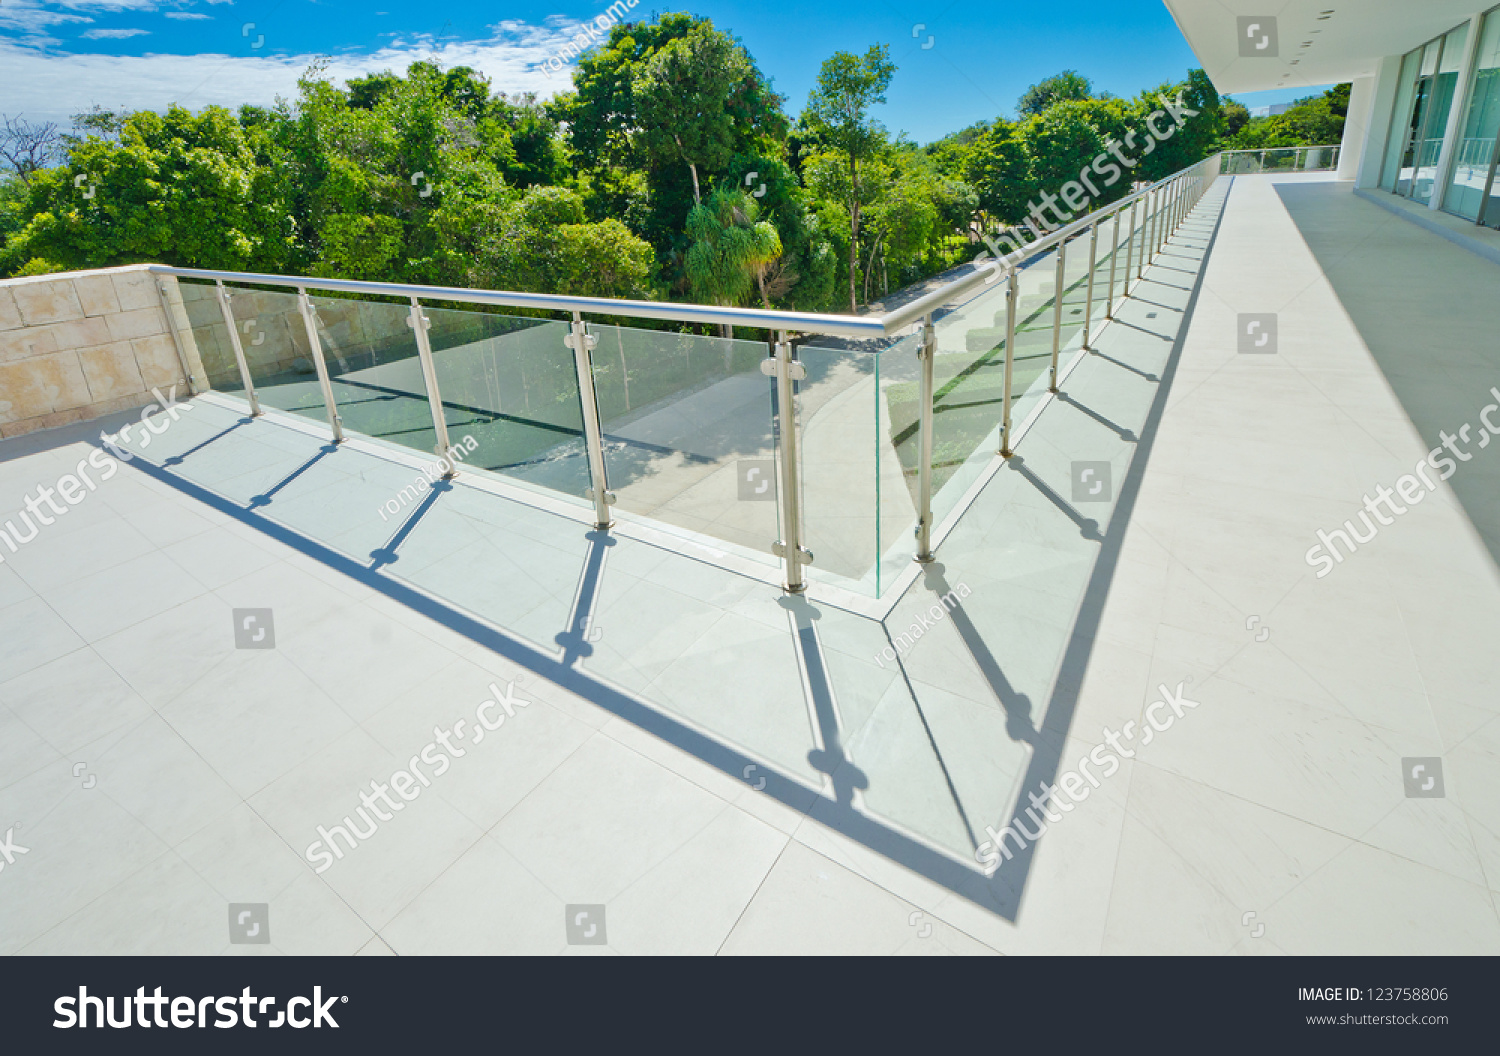 Perspective modern glass steel balcony deck stock photo for Exterior balcony railing design